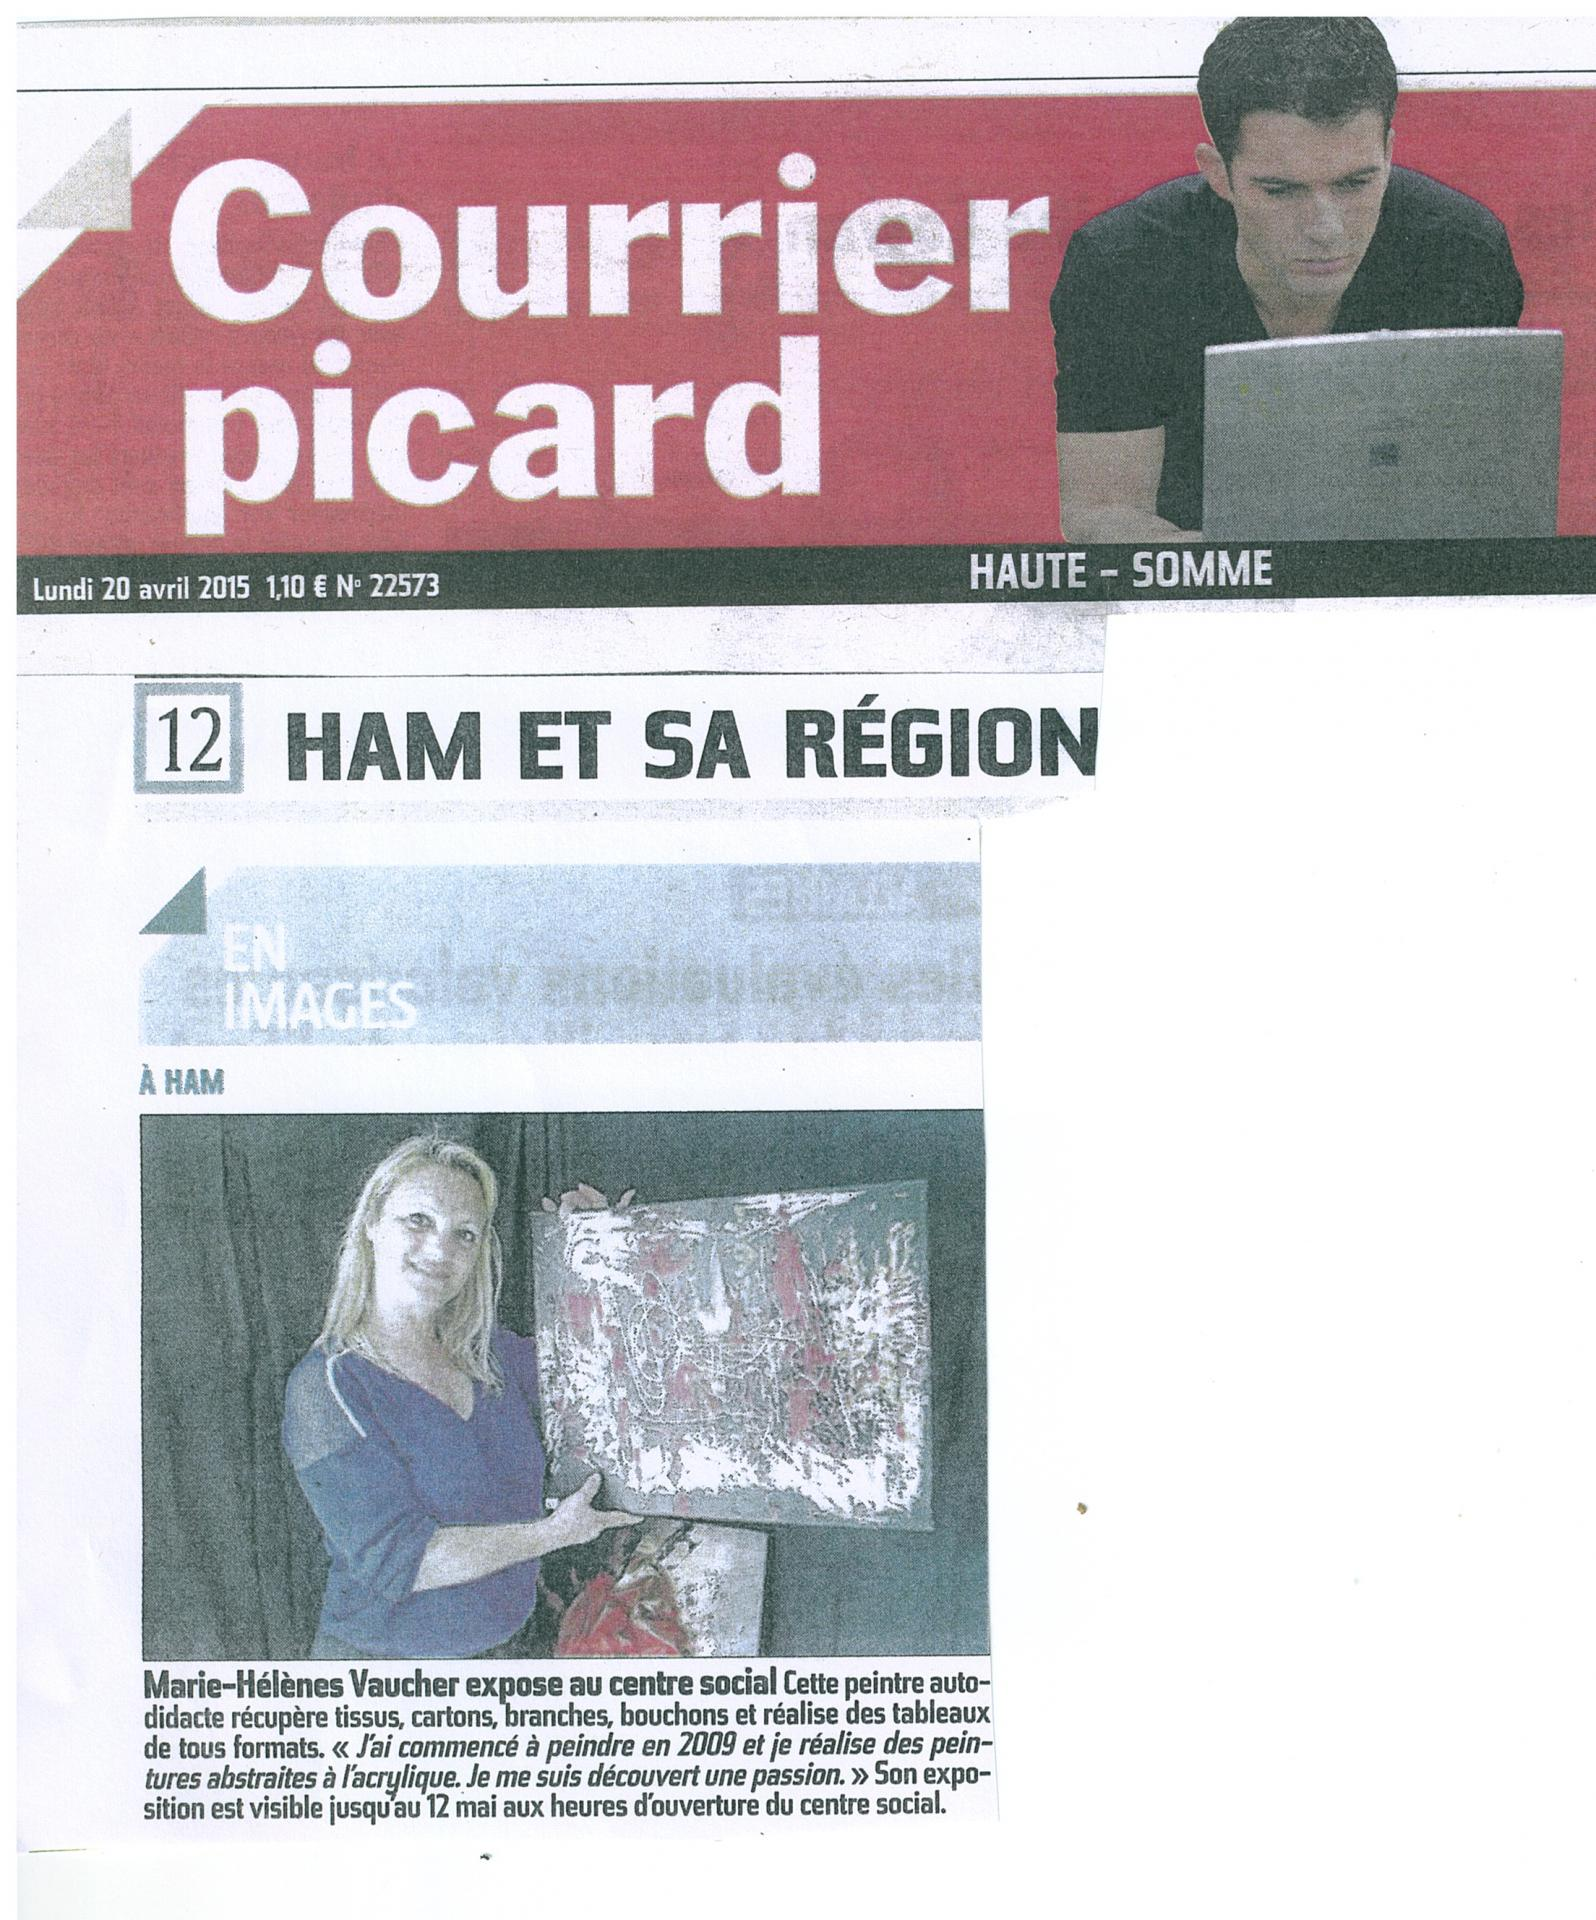 Courrier picard 20 avril 2015 001